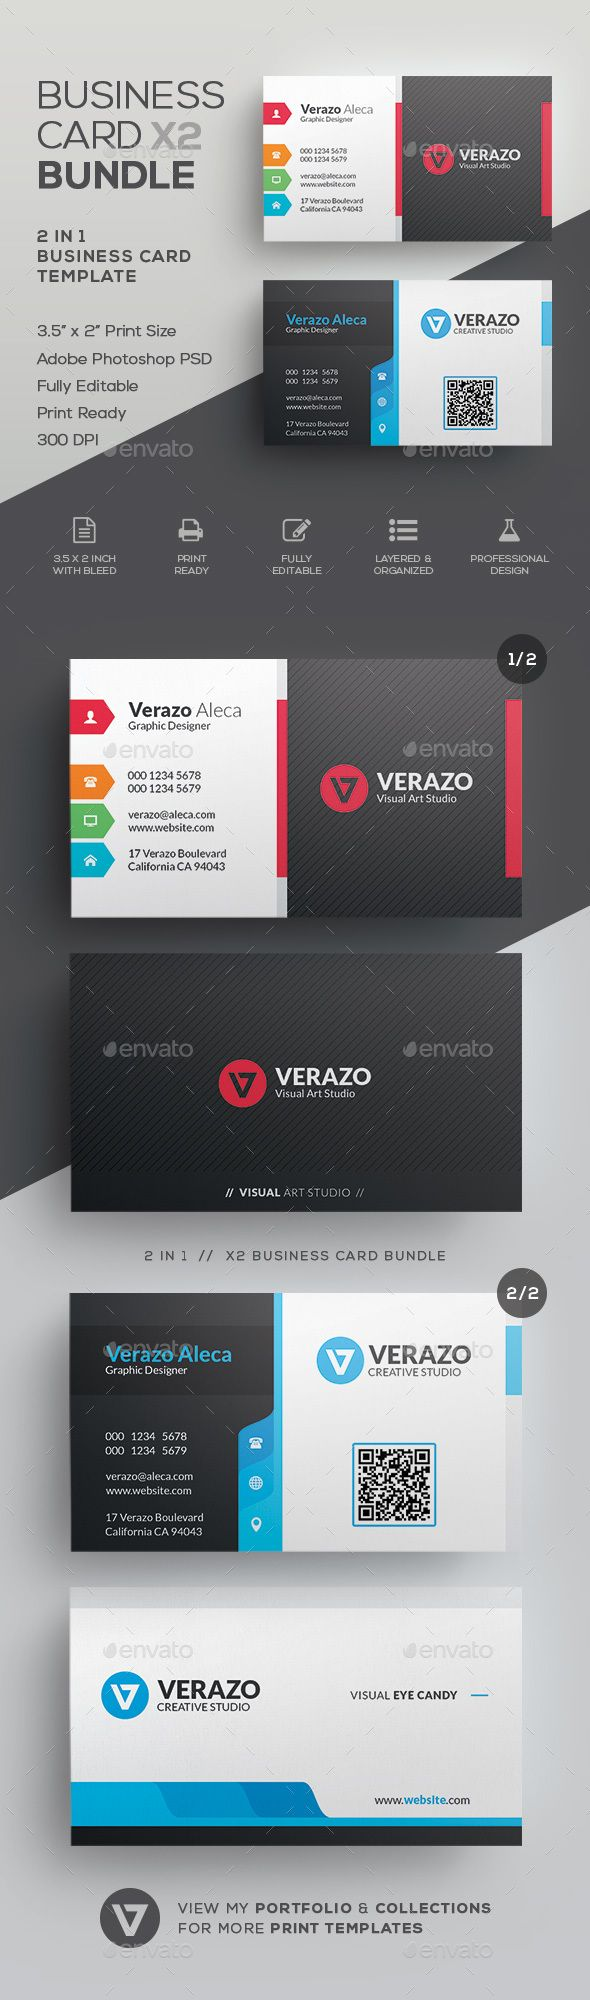 Business Card Bundle 44 | Card templates, Business cards and Template